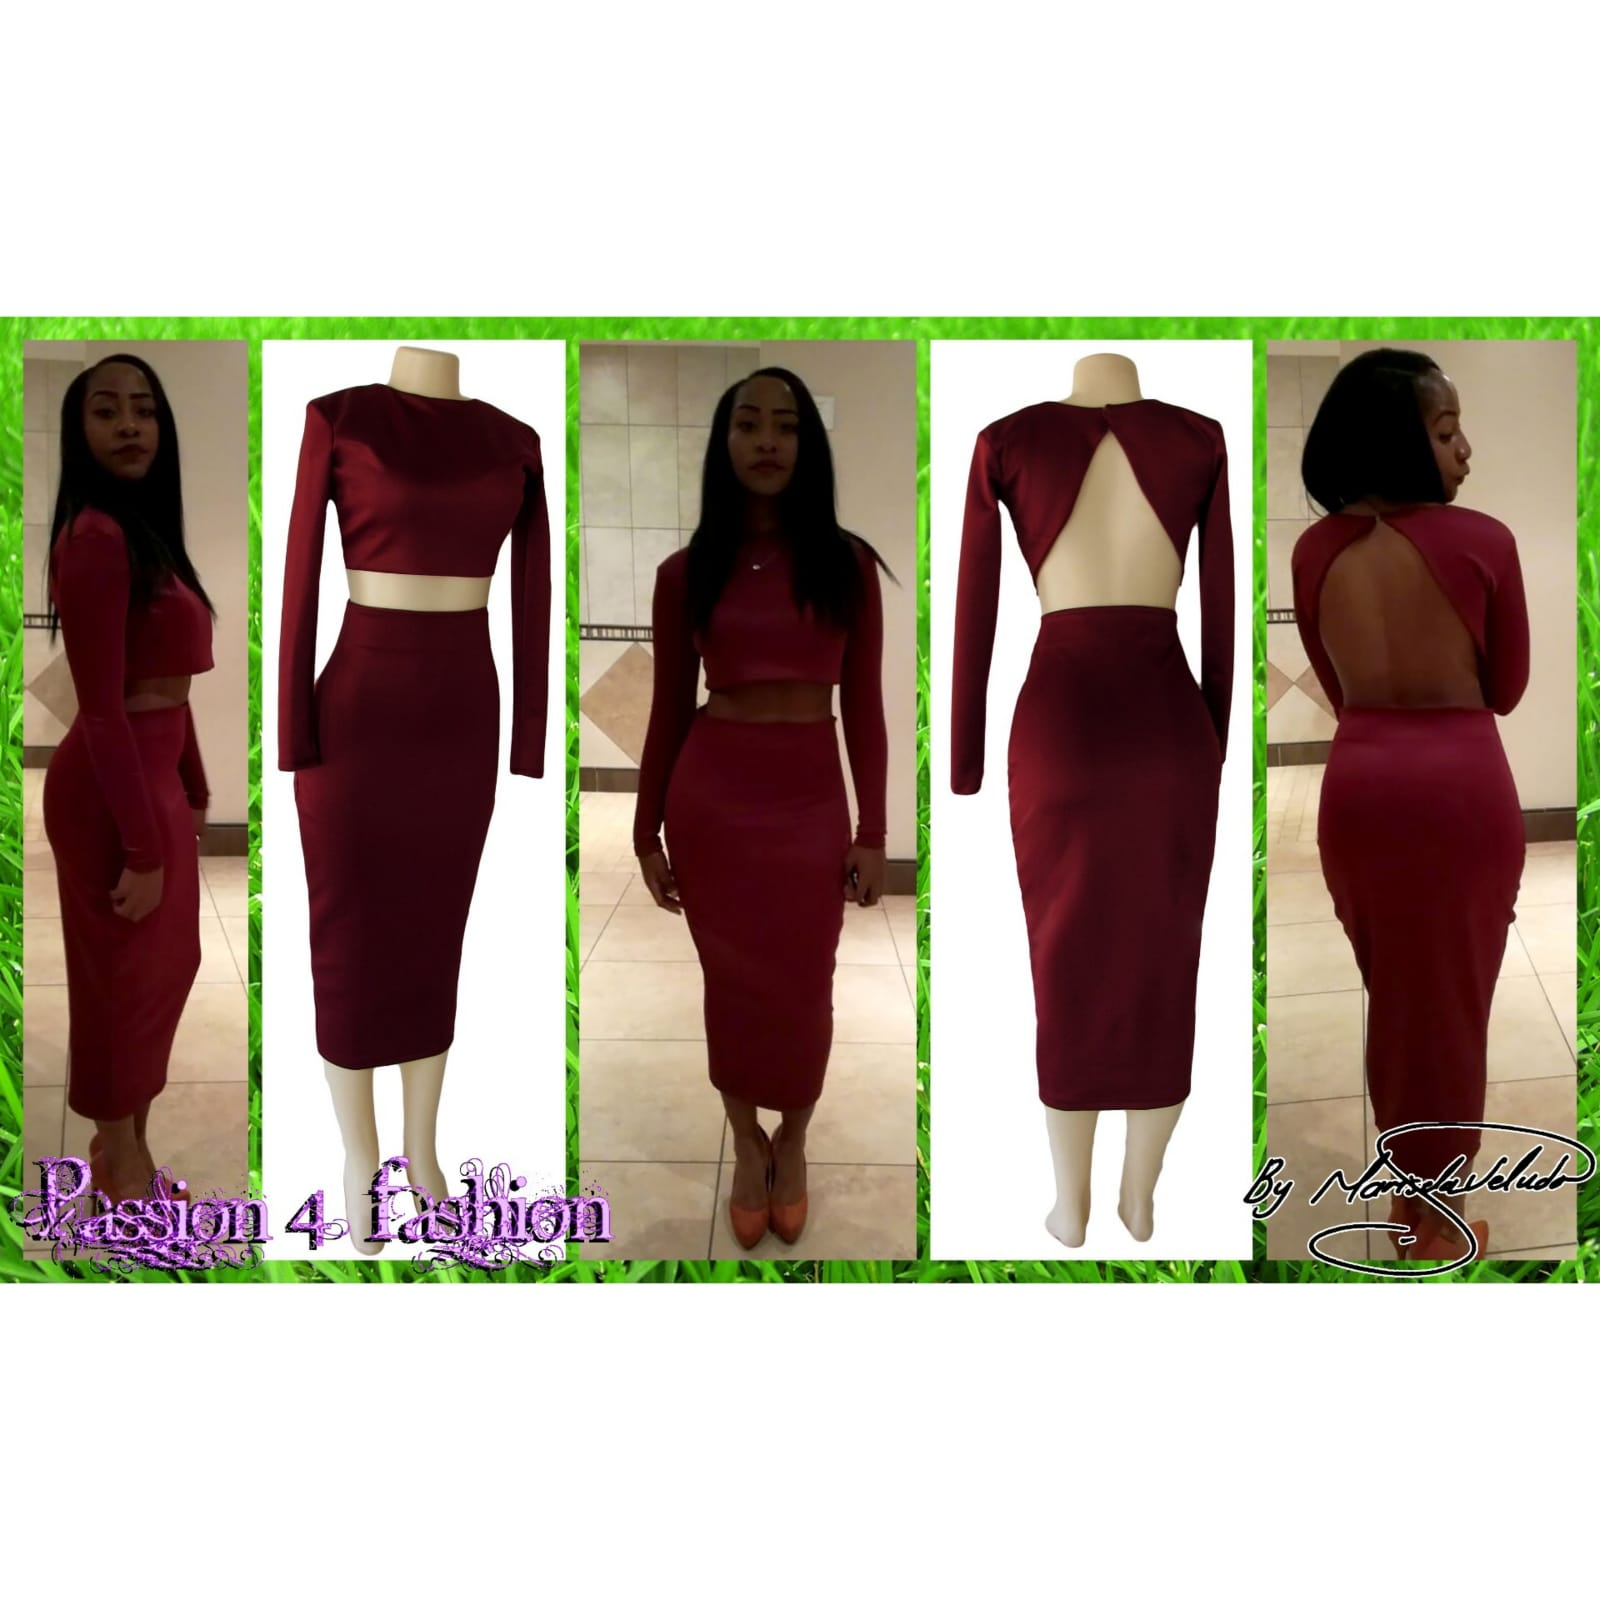 2 piece maroon tight fitting smart casual outfit 6 2 piece maroon tight fitting smart casual outfit. With a crop top, long sleeves and 3/4 length tight fitting skirt